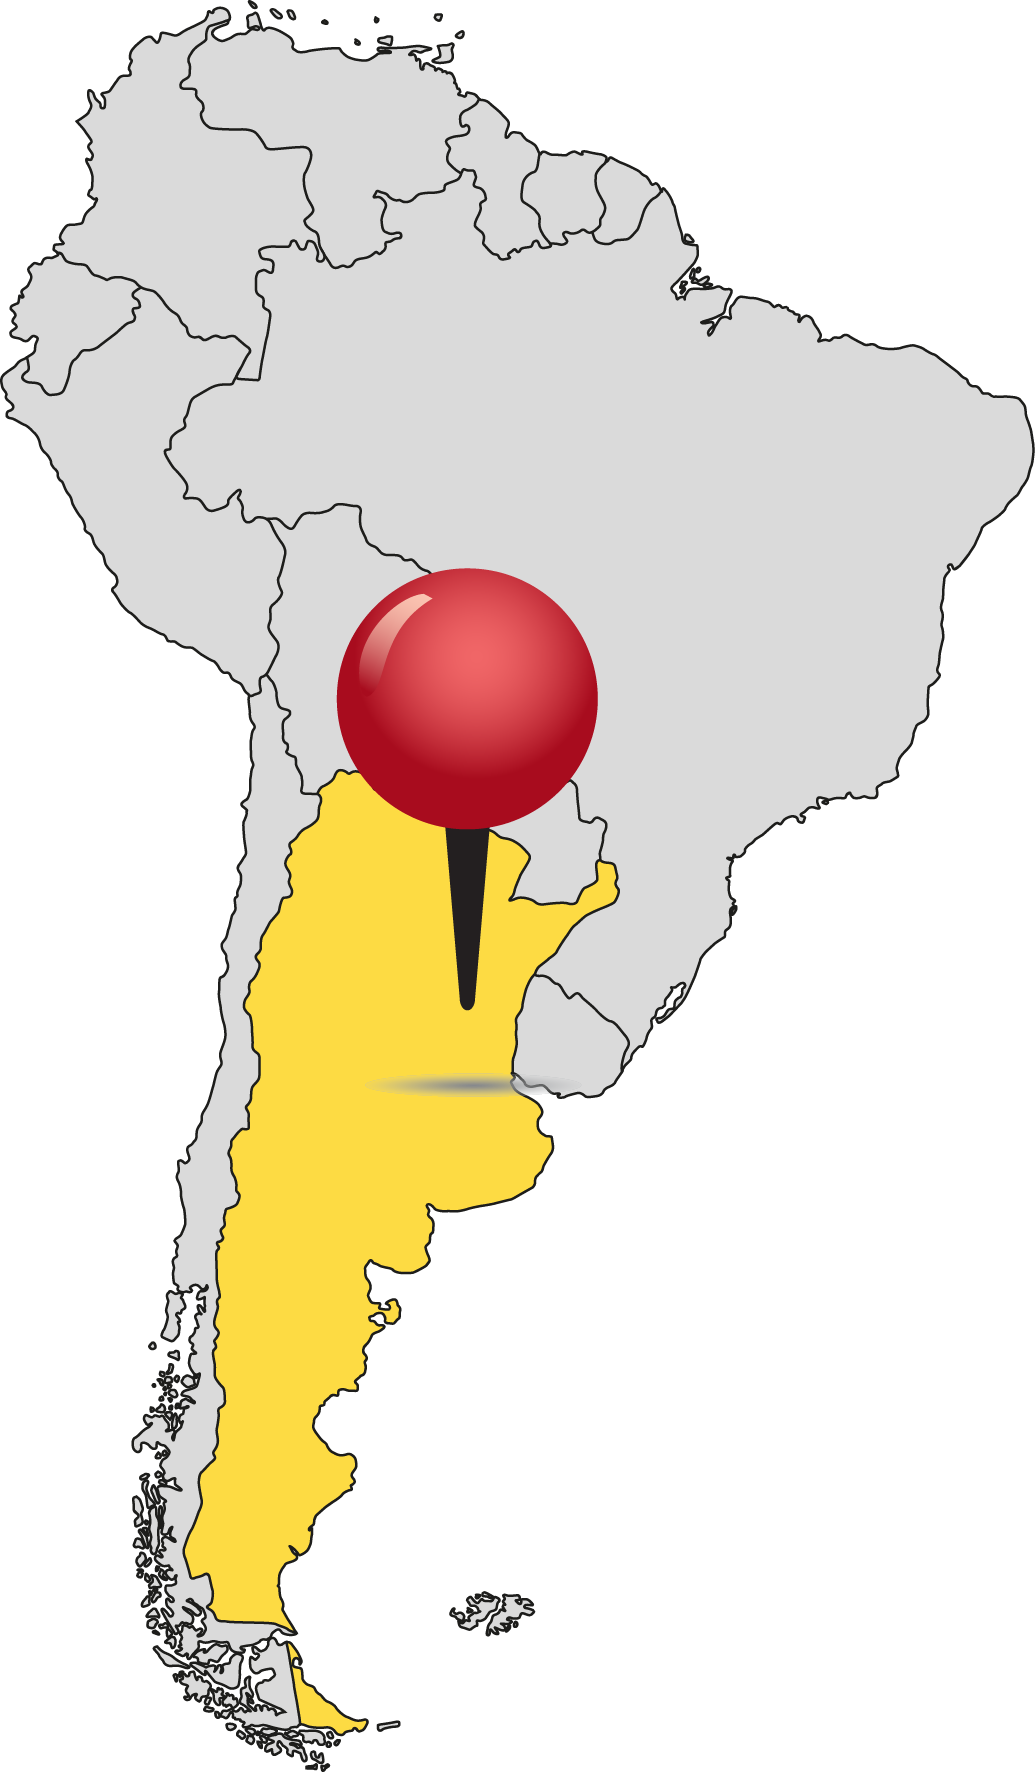 Santa Fe, Argentina Rock River Laboratory location on a map